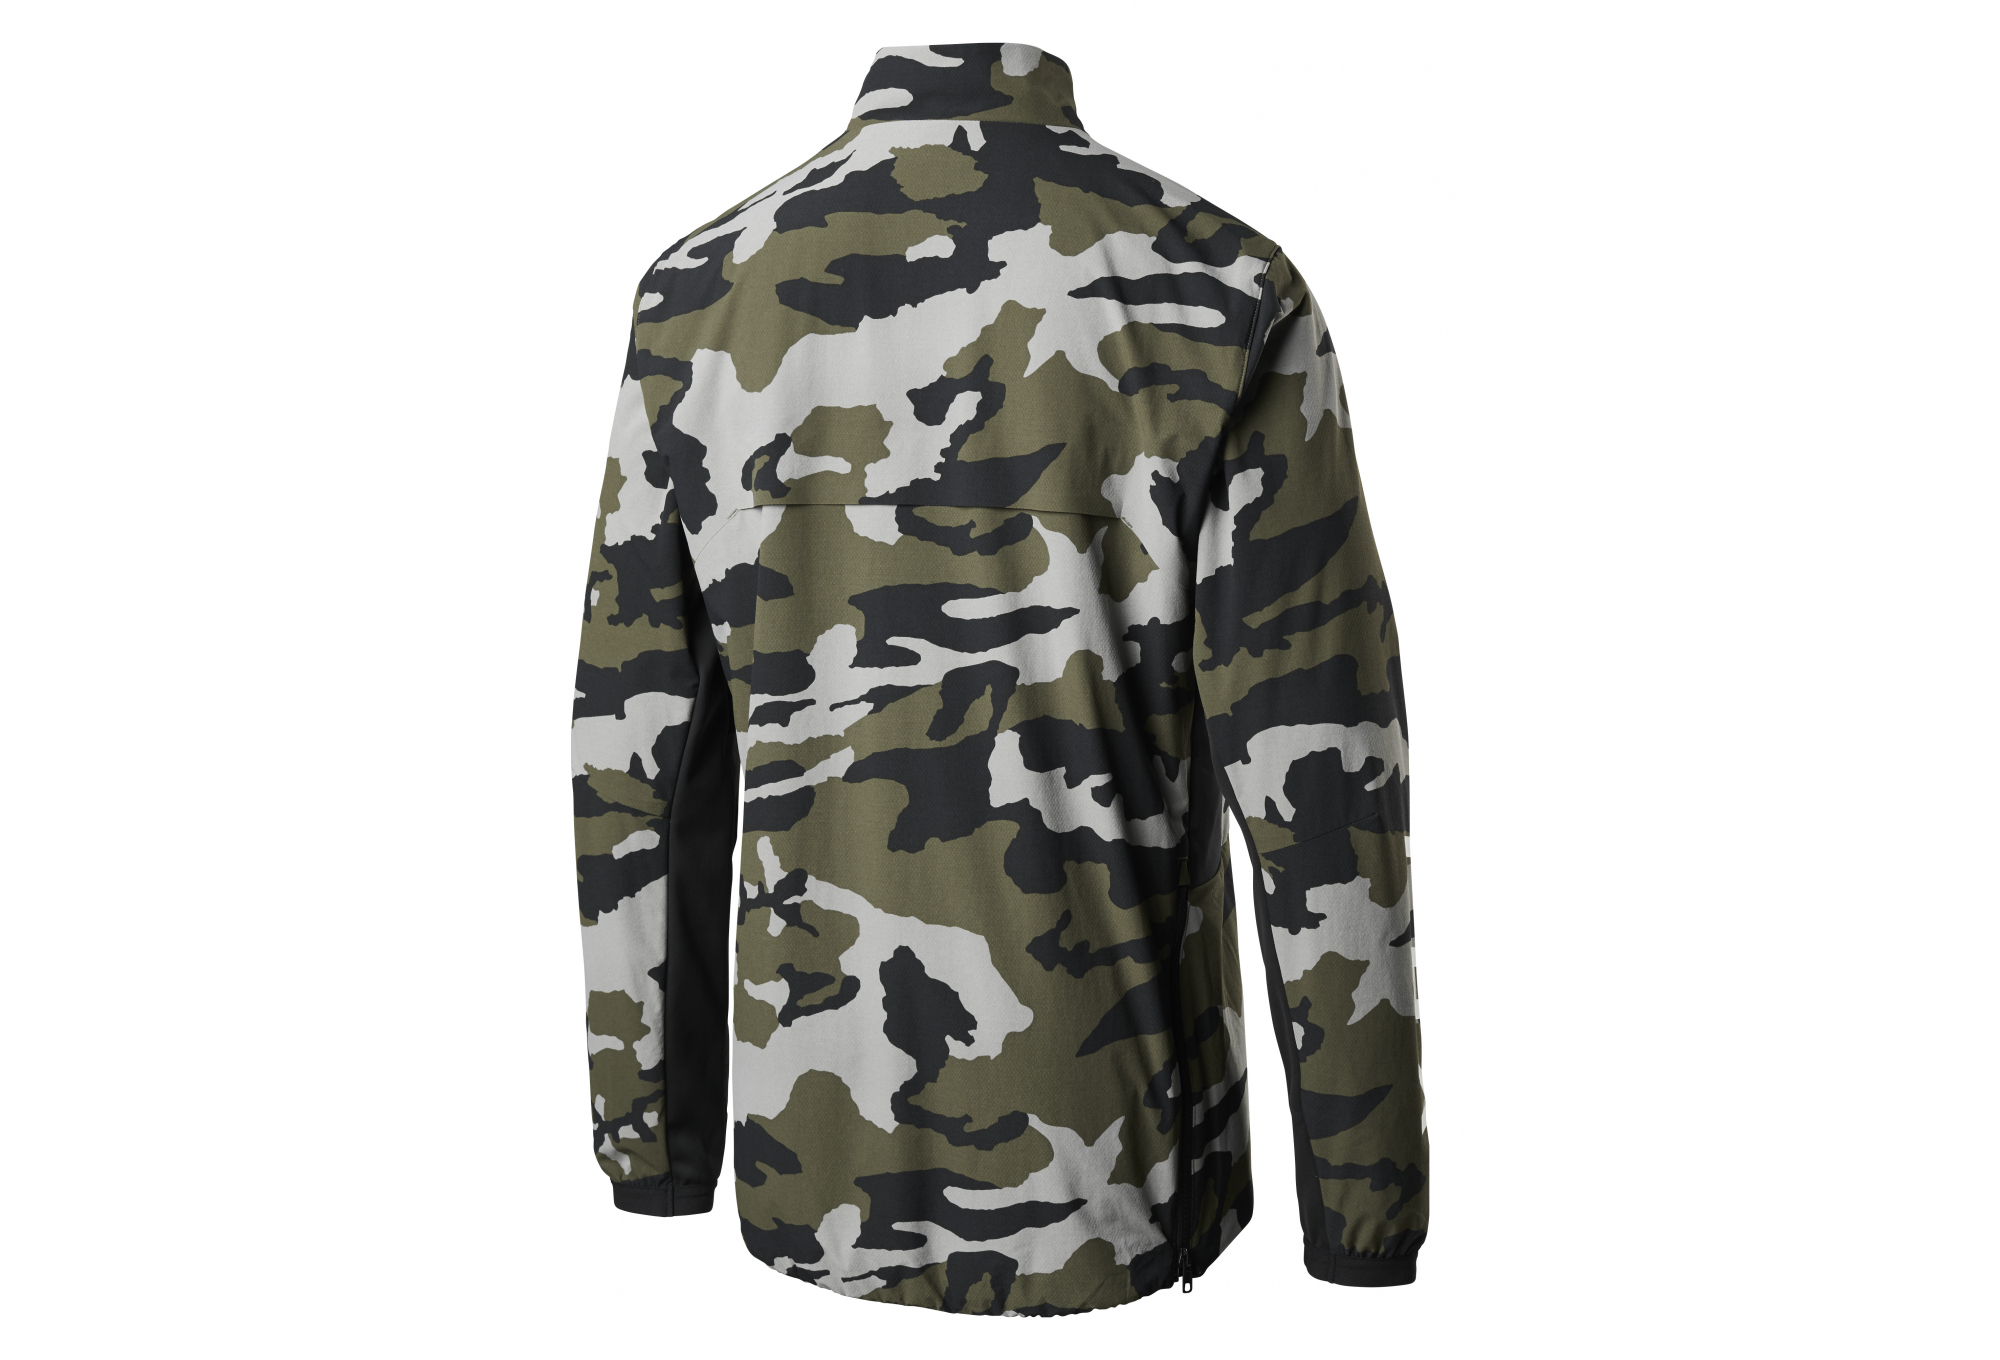 Fox Flexair Pro Fire Alpha Grün Camo Jacke